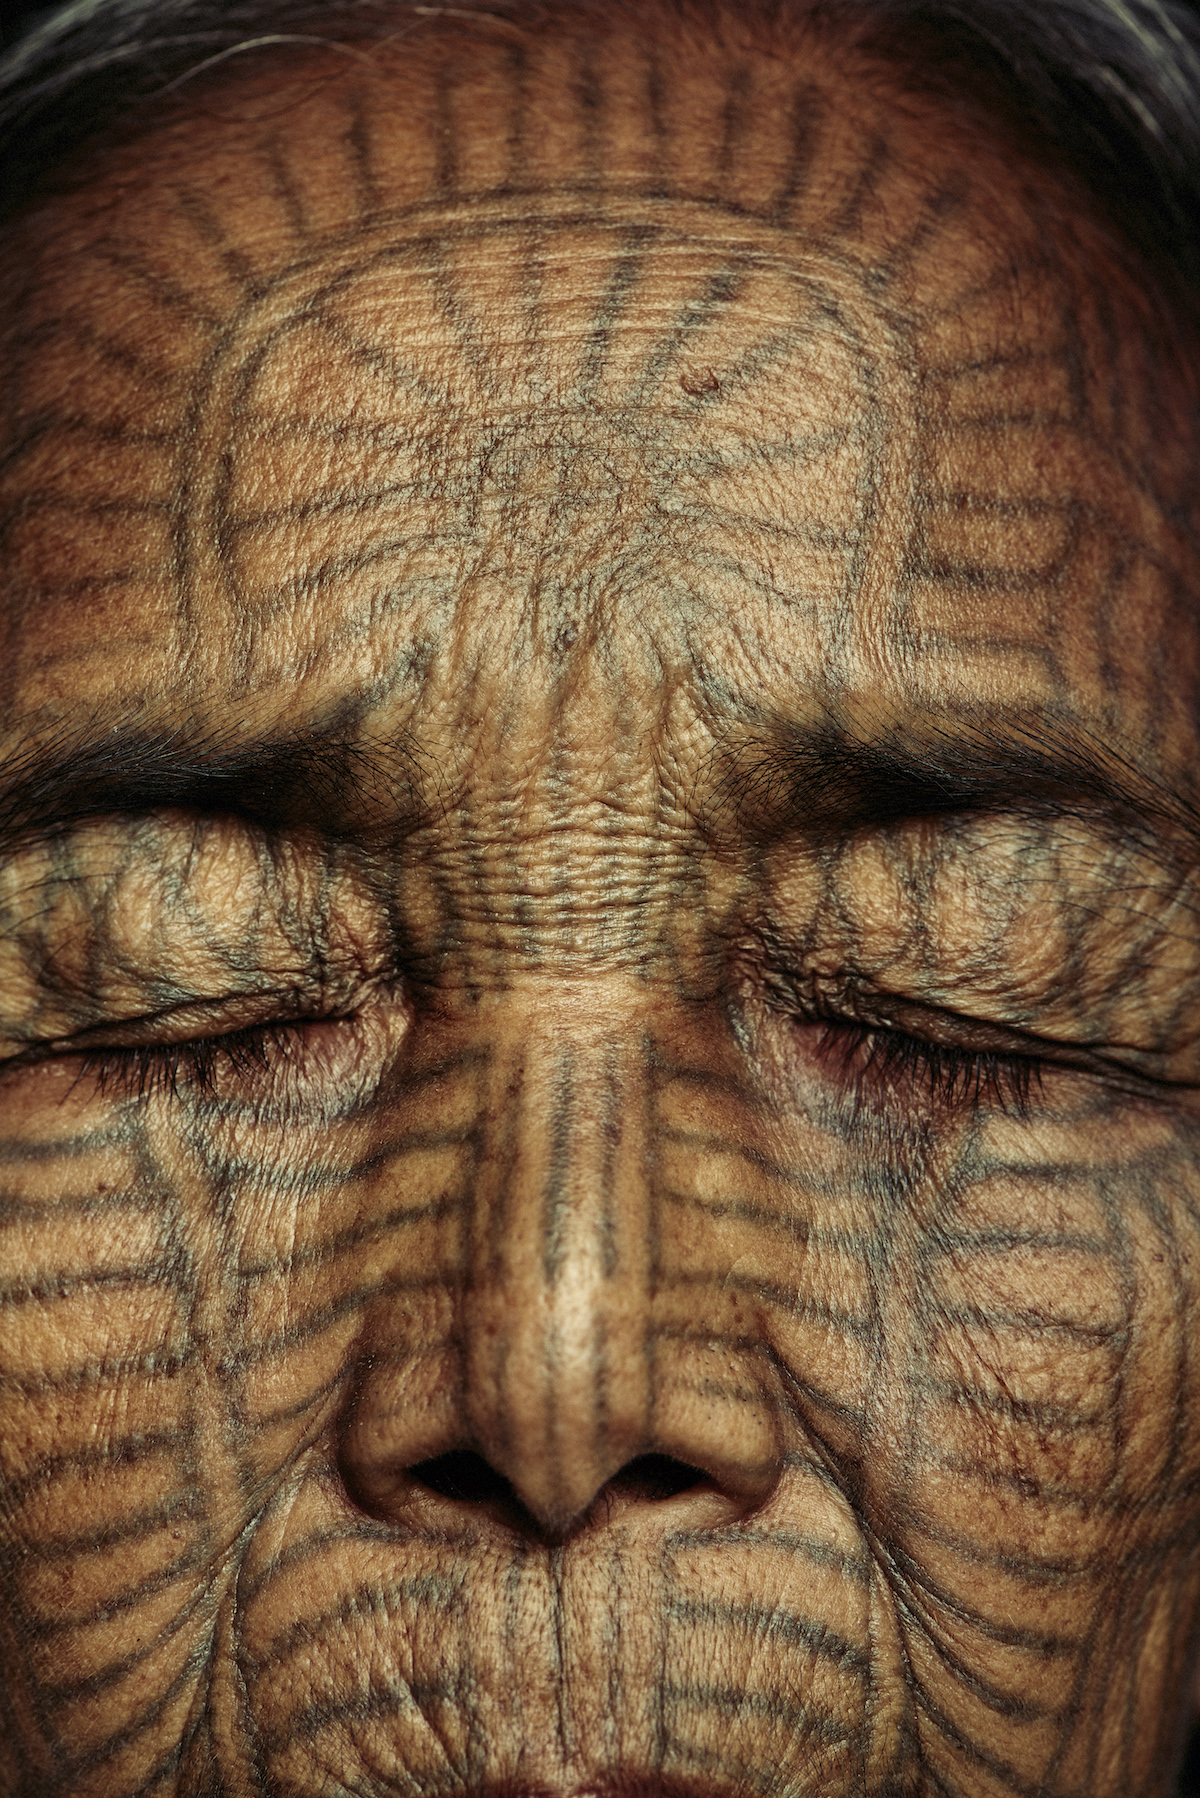 Traditional Chin Facial Tattoos